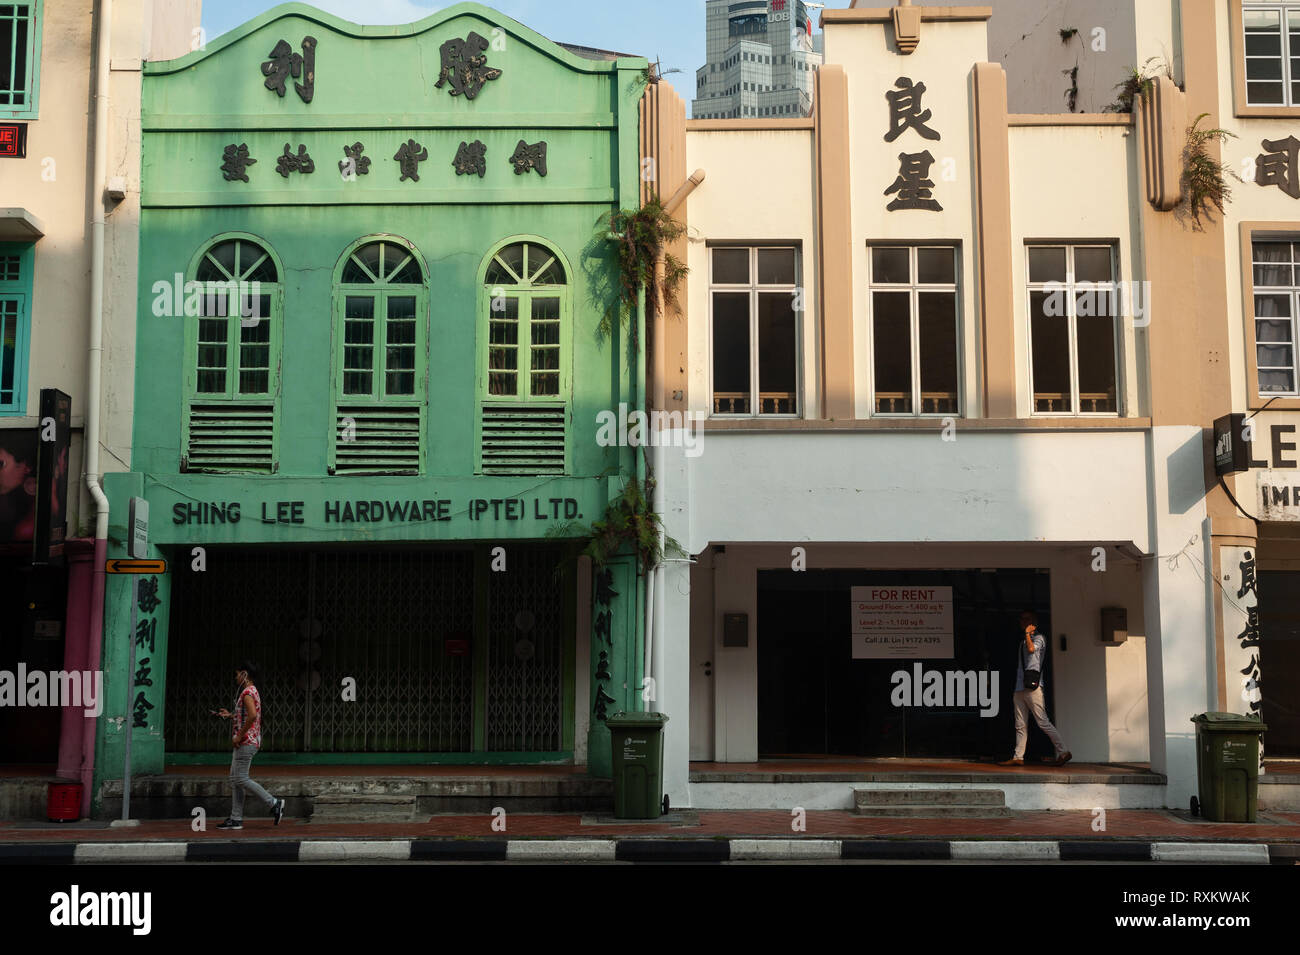 08.03.2019, Singapore, Republic of Singapore, Asia - A view of old buildings along South Bridge Road in the city centre. Stock Photo